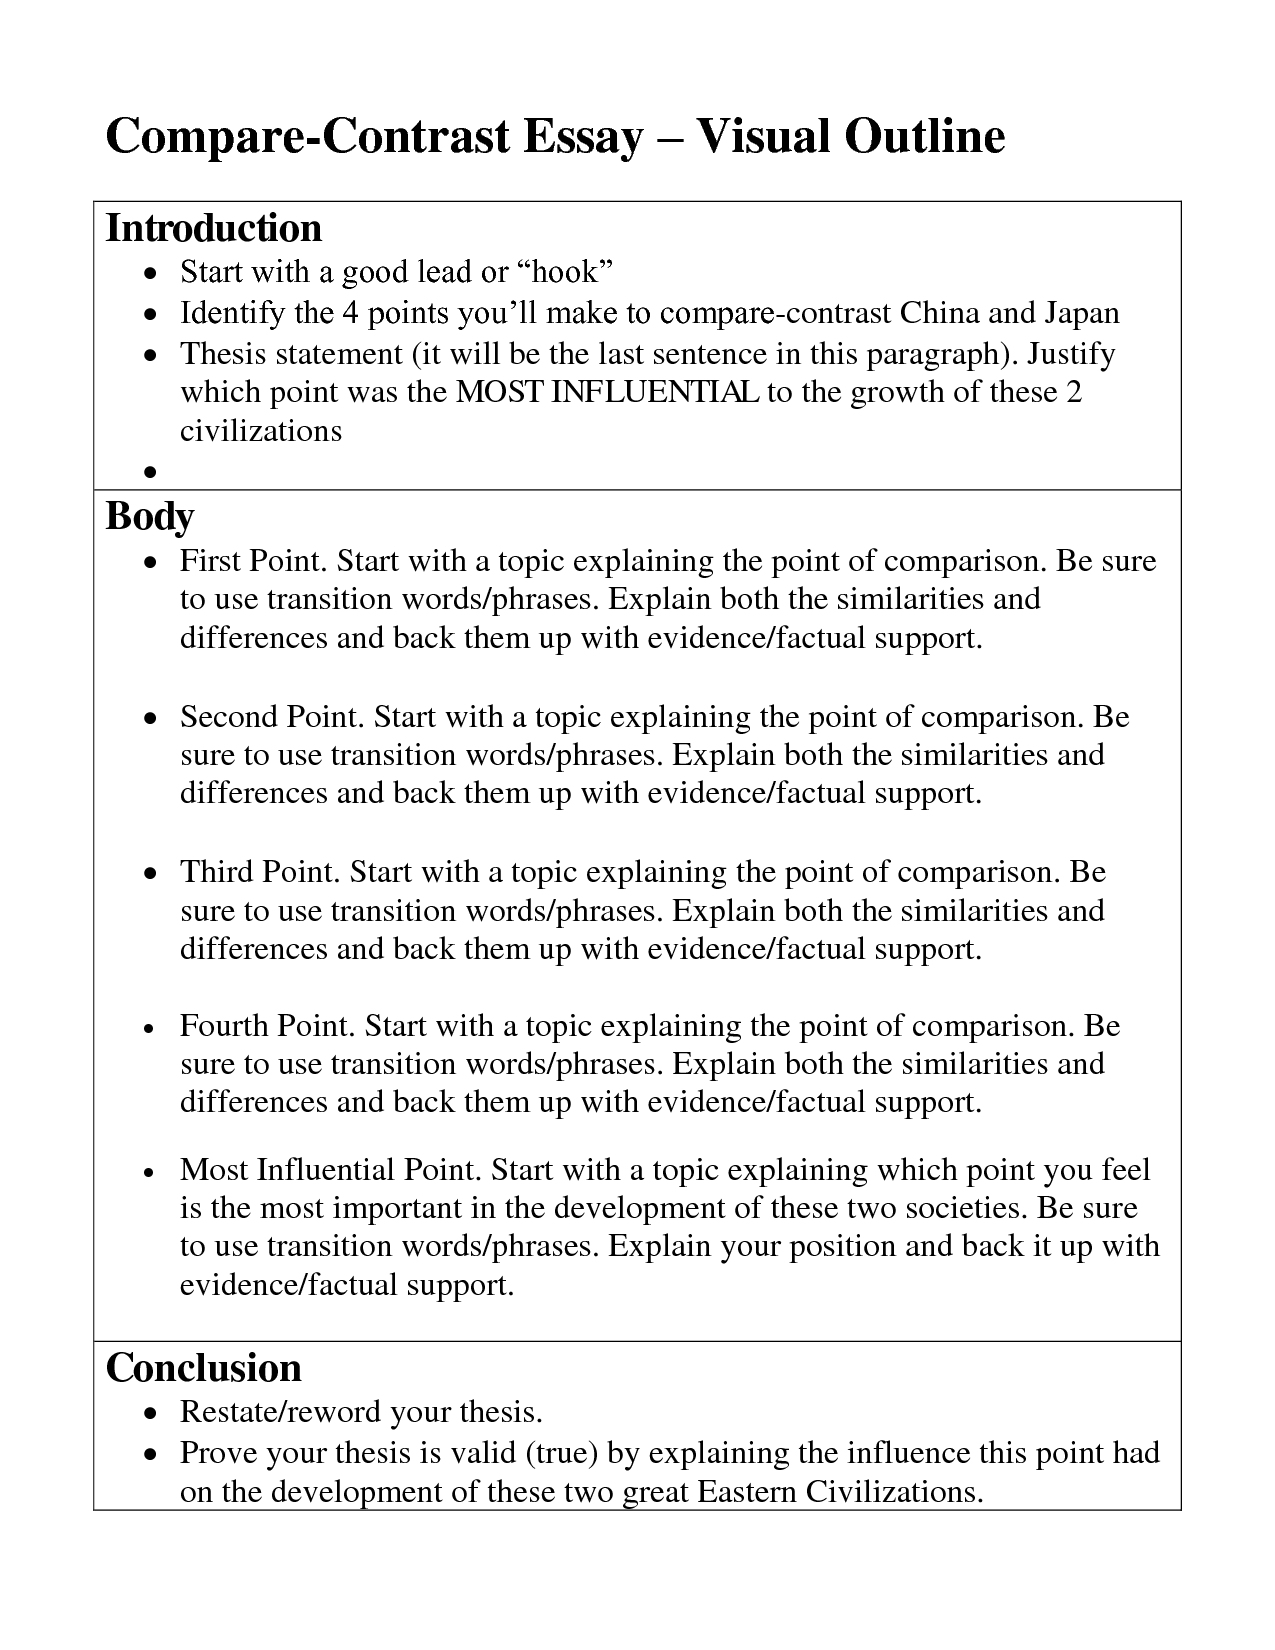 004 How To Write Compare And Contrast Essay Striking A Good Introduction Essays Full